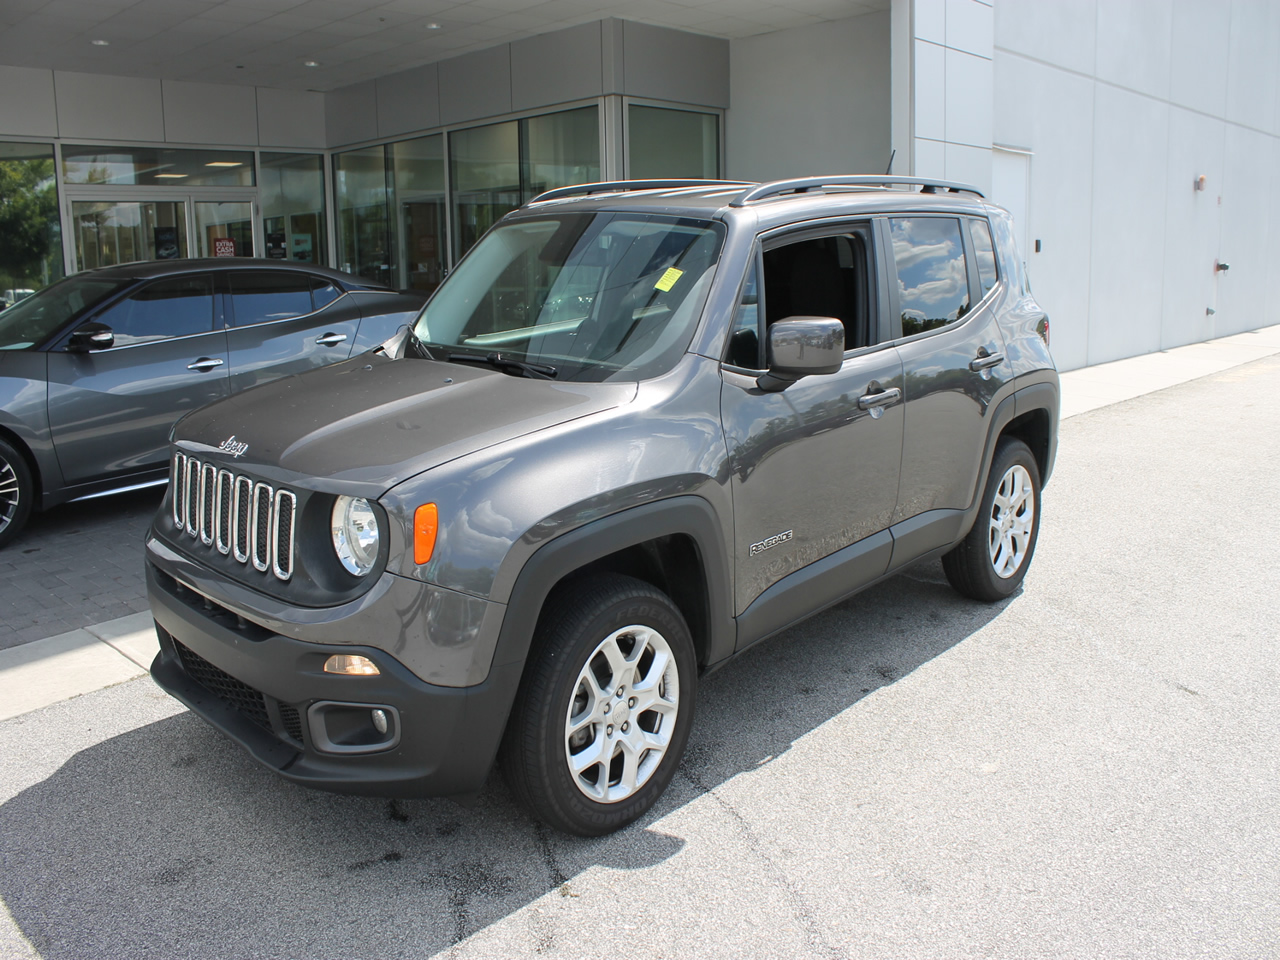 used 2016 jeep renegade latitude 4wd vin zaccjbbt8gpd99760 columbia sc 29223 dick smith. Black Bedroom Furniture Sets. Home Design Ideas